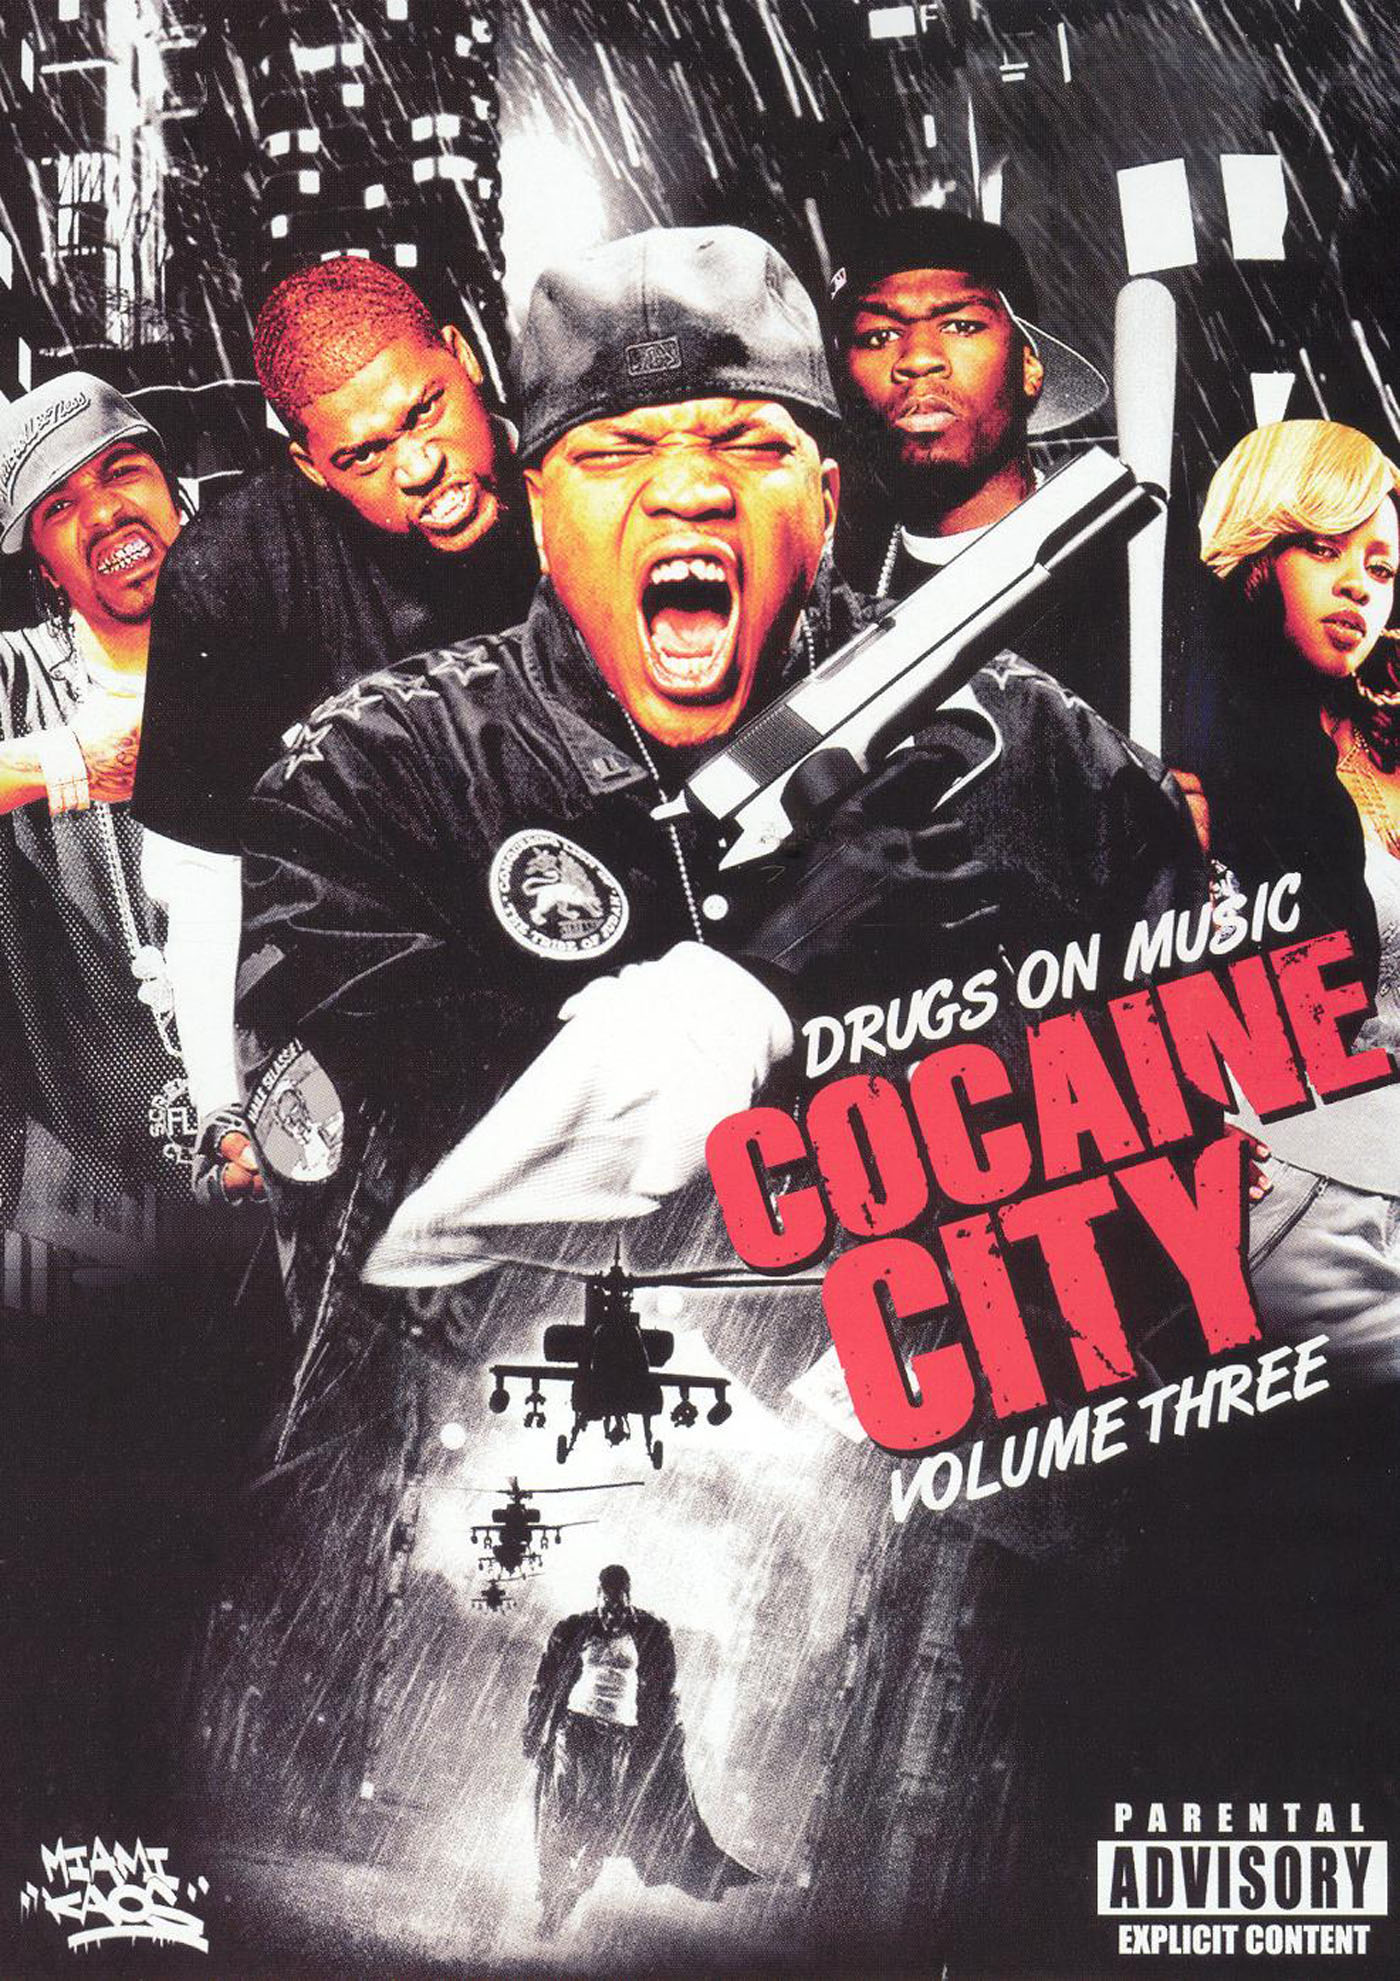 Drugs on Music: Cocaine City, Vol. 3